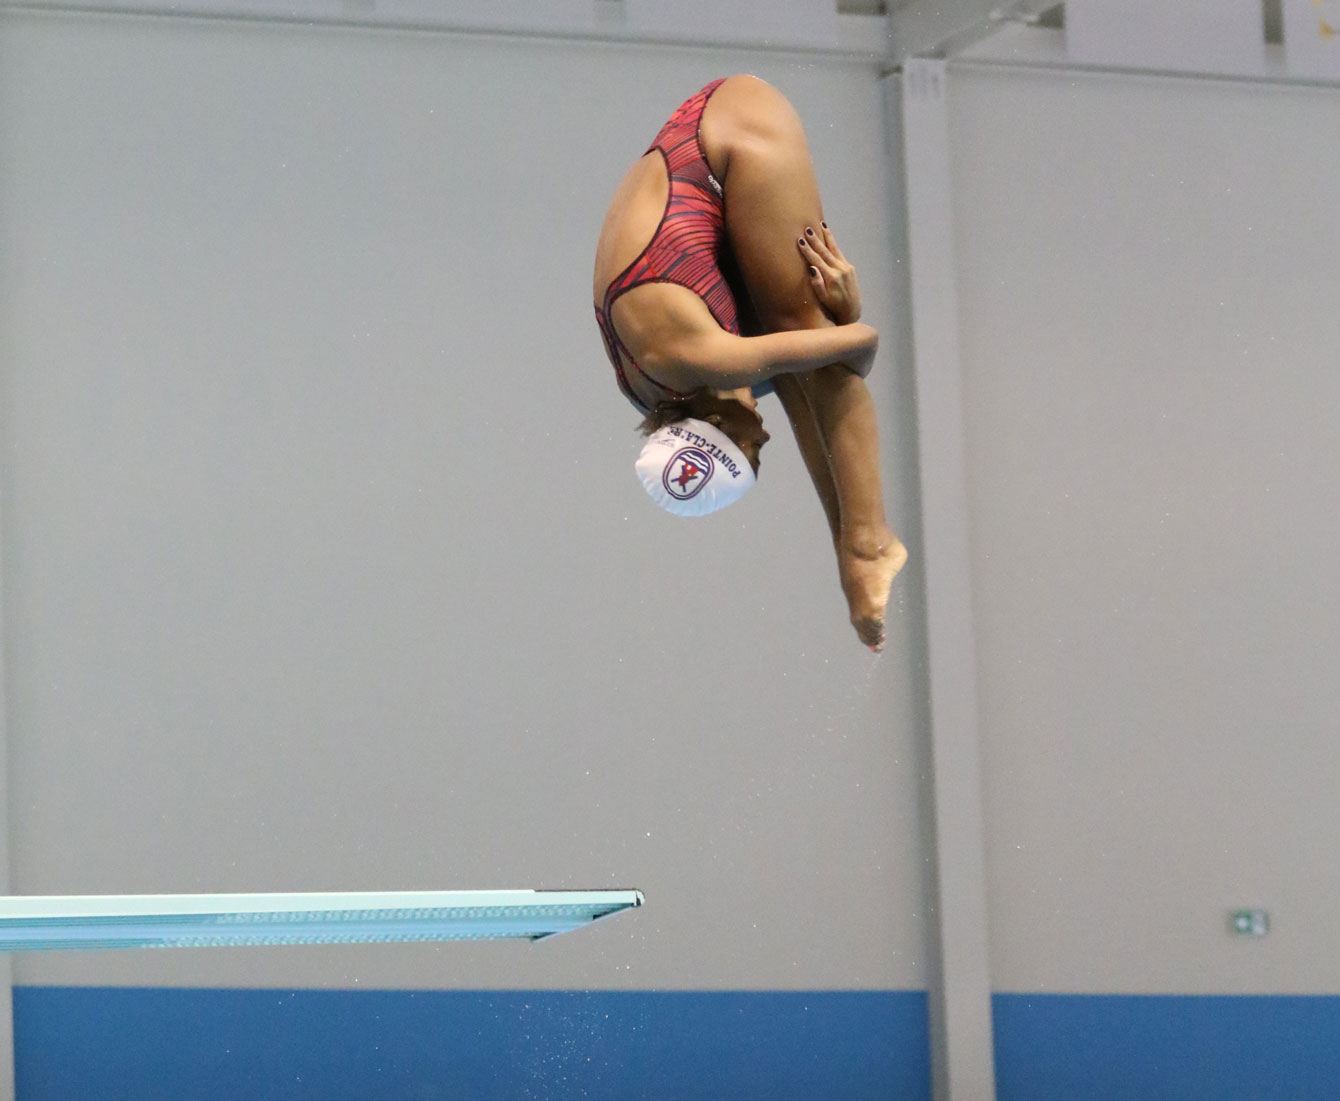 Jennifer Abel warms up while wearing a bathing cap. A report on April 1, 2015 indicates the cap is under review by FINA.